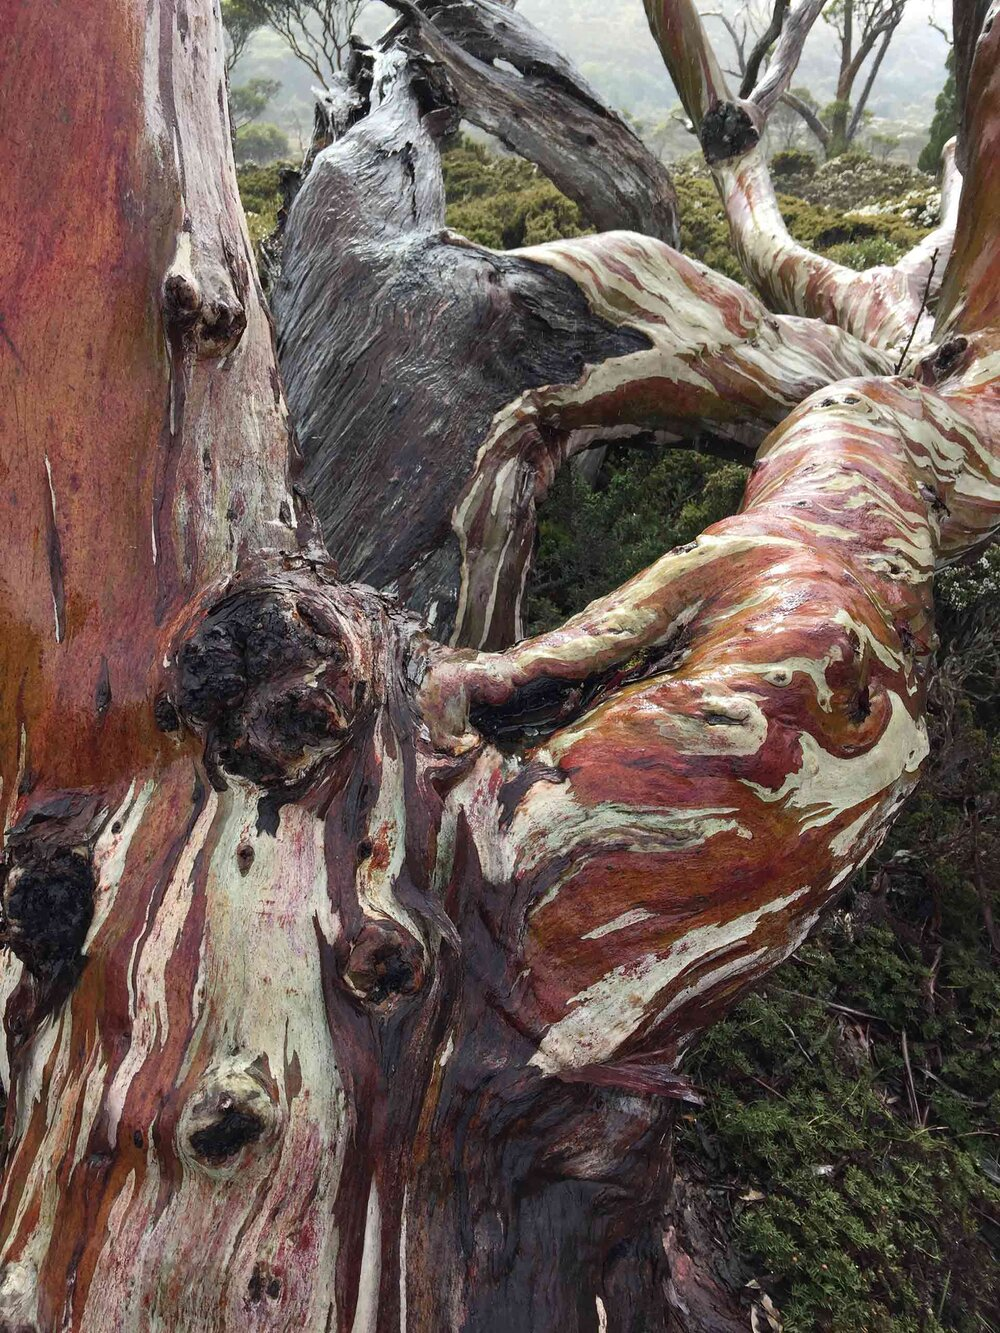 Tasmanian snow gum  Eucalyptus coccifera  with another stunning smooth bark texture.    Image source